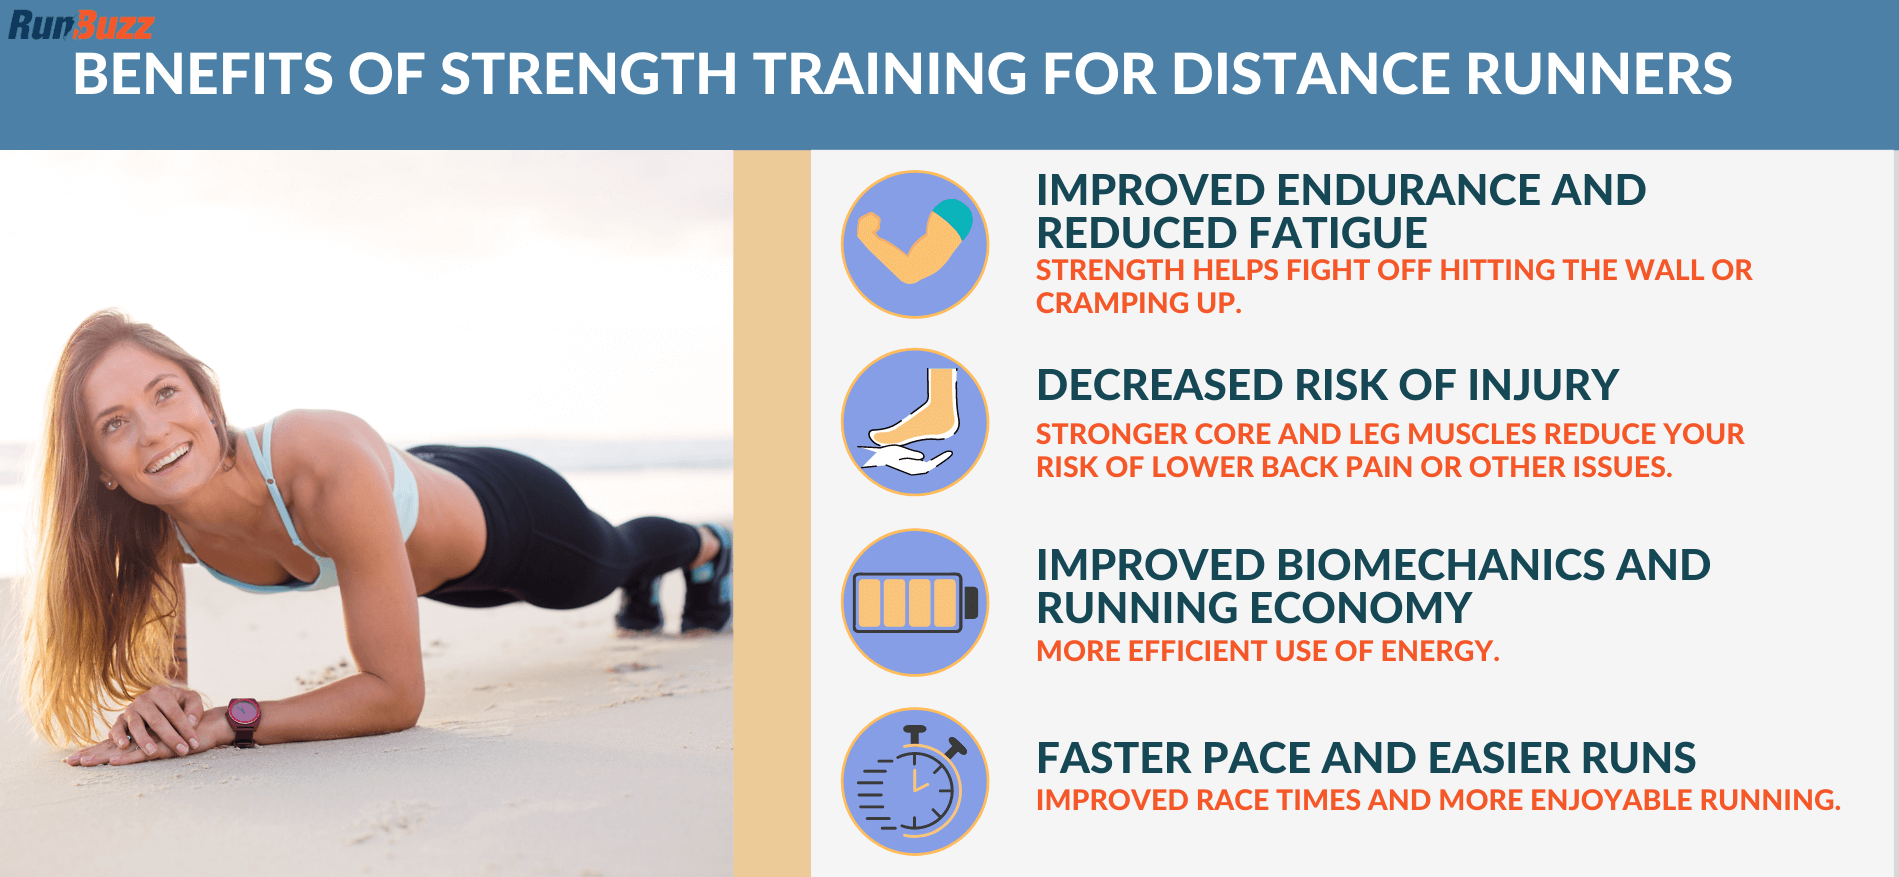 Benefits-of-Strength-Training-for-Distance-Runners